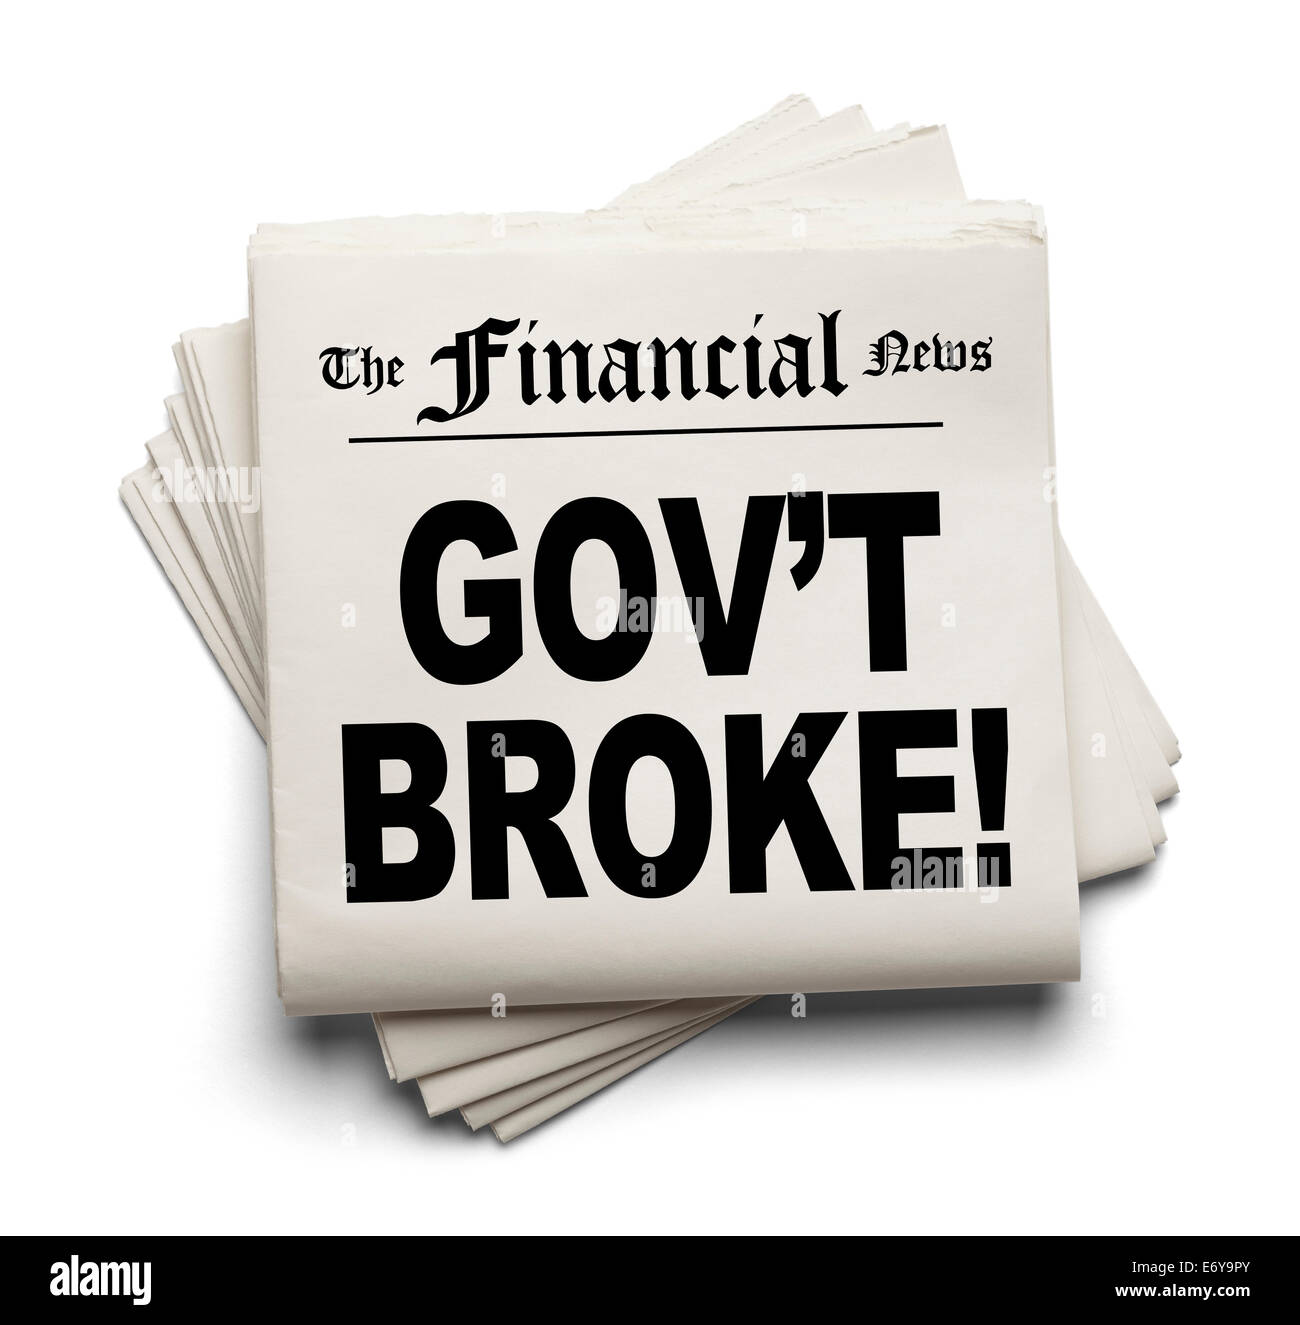 Financial New Paper with Gov't Broke Headline Isolated on White Background. - Stock Image